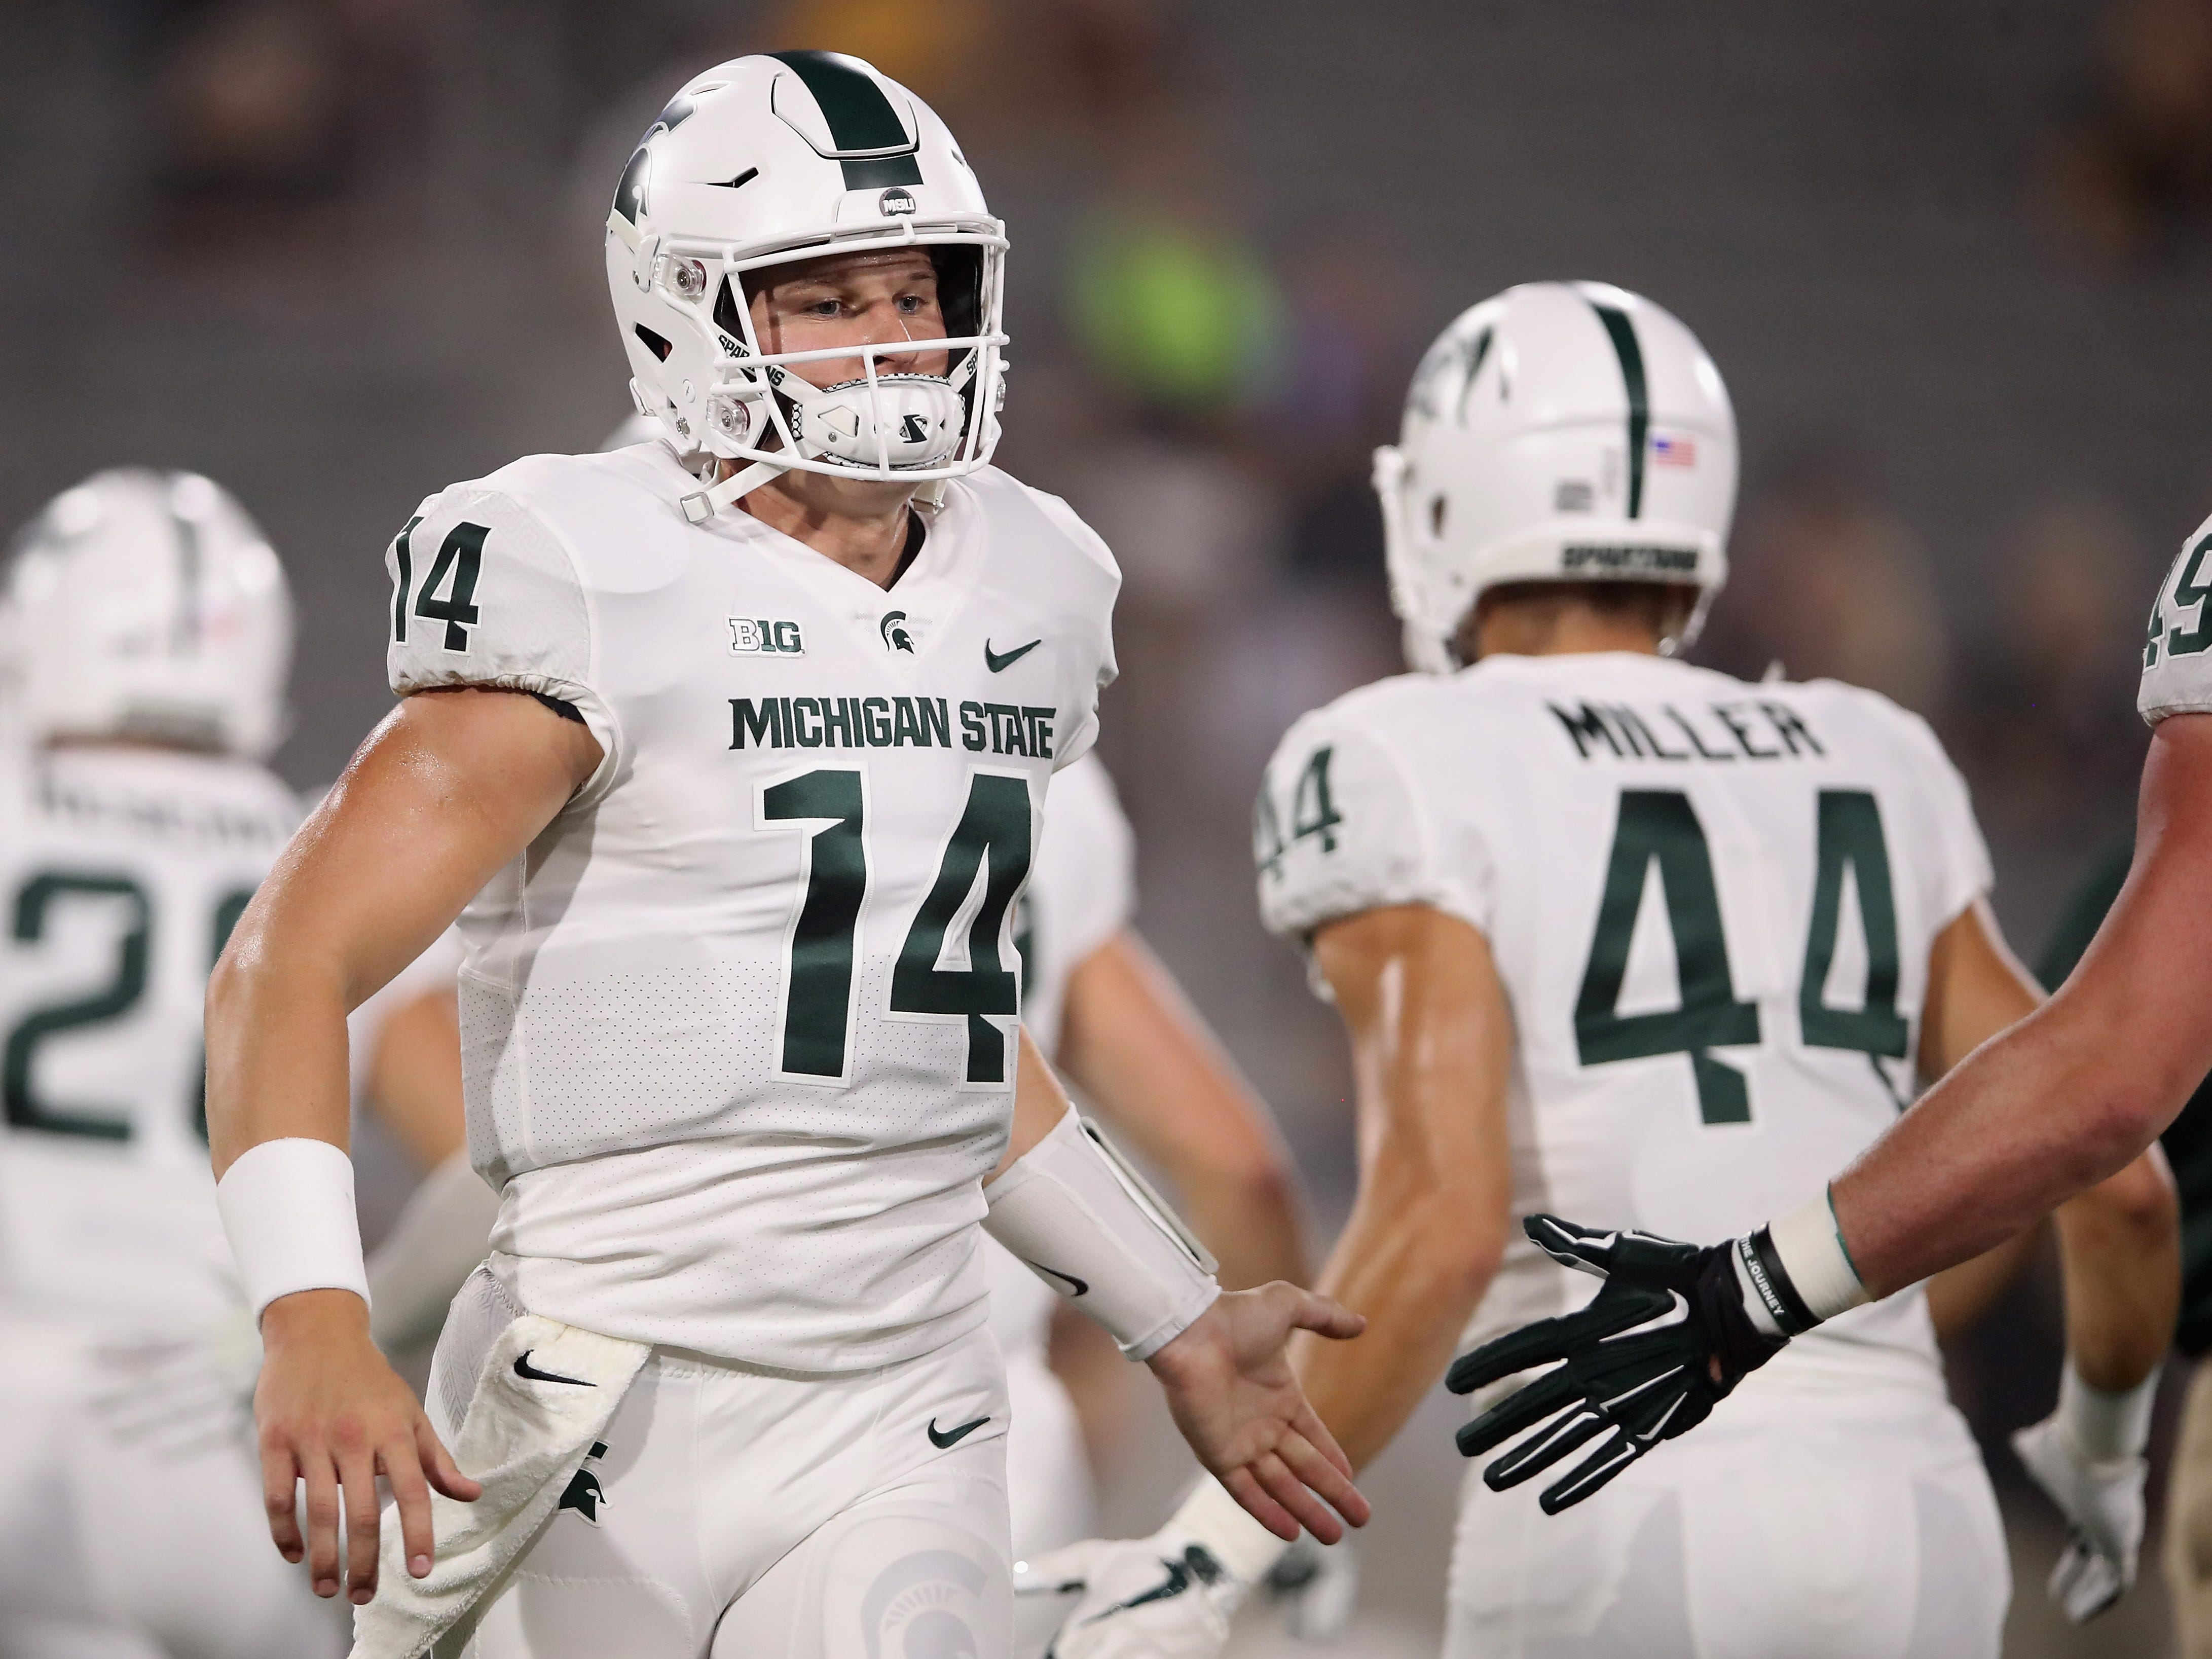 Quarterback Brian Lewerke #14 of the Michigan State Spartans warms up before the college football game against the Arizona State Sun Devils at Sun Devil Stadium on September 8, 2018 in Tempe, Arizona.